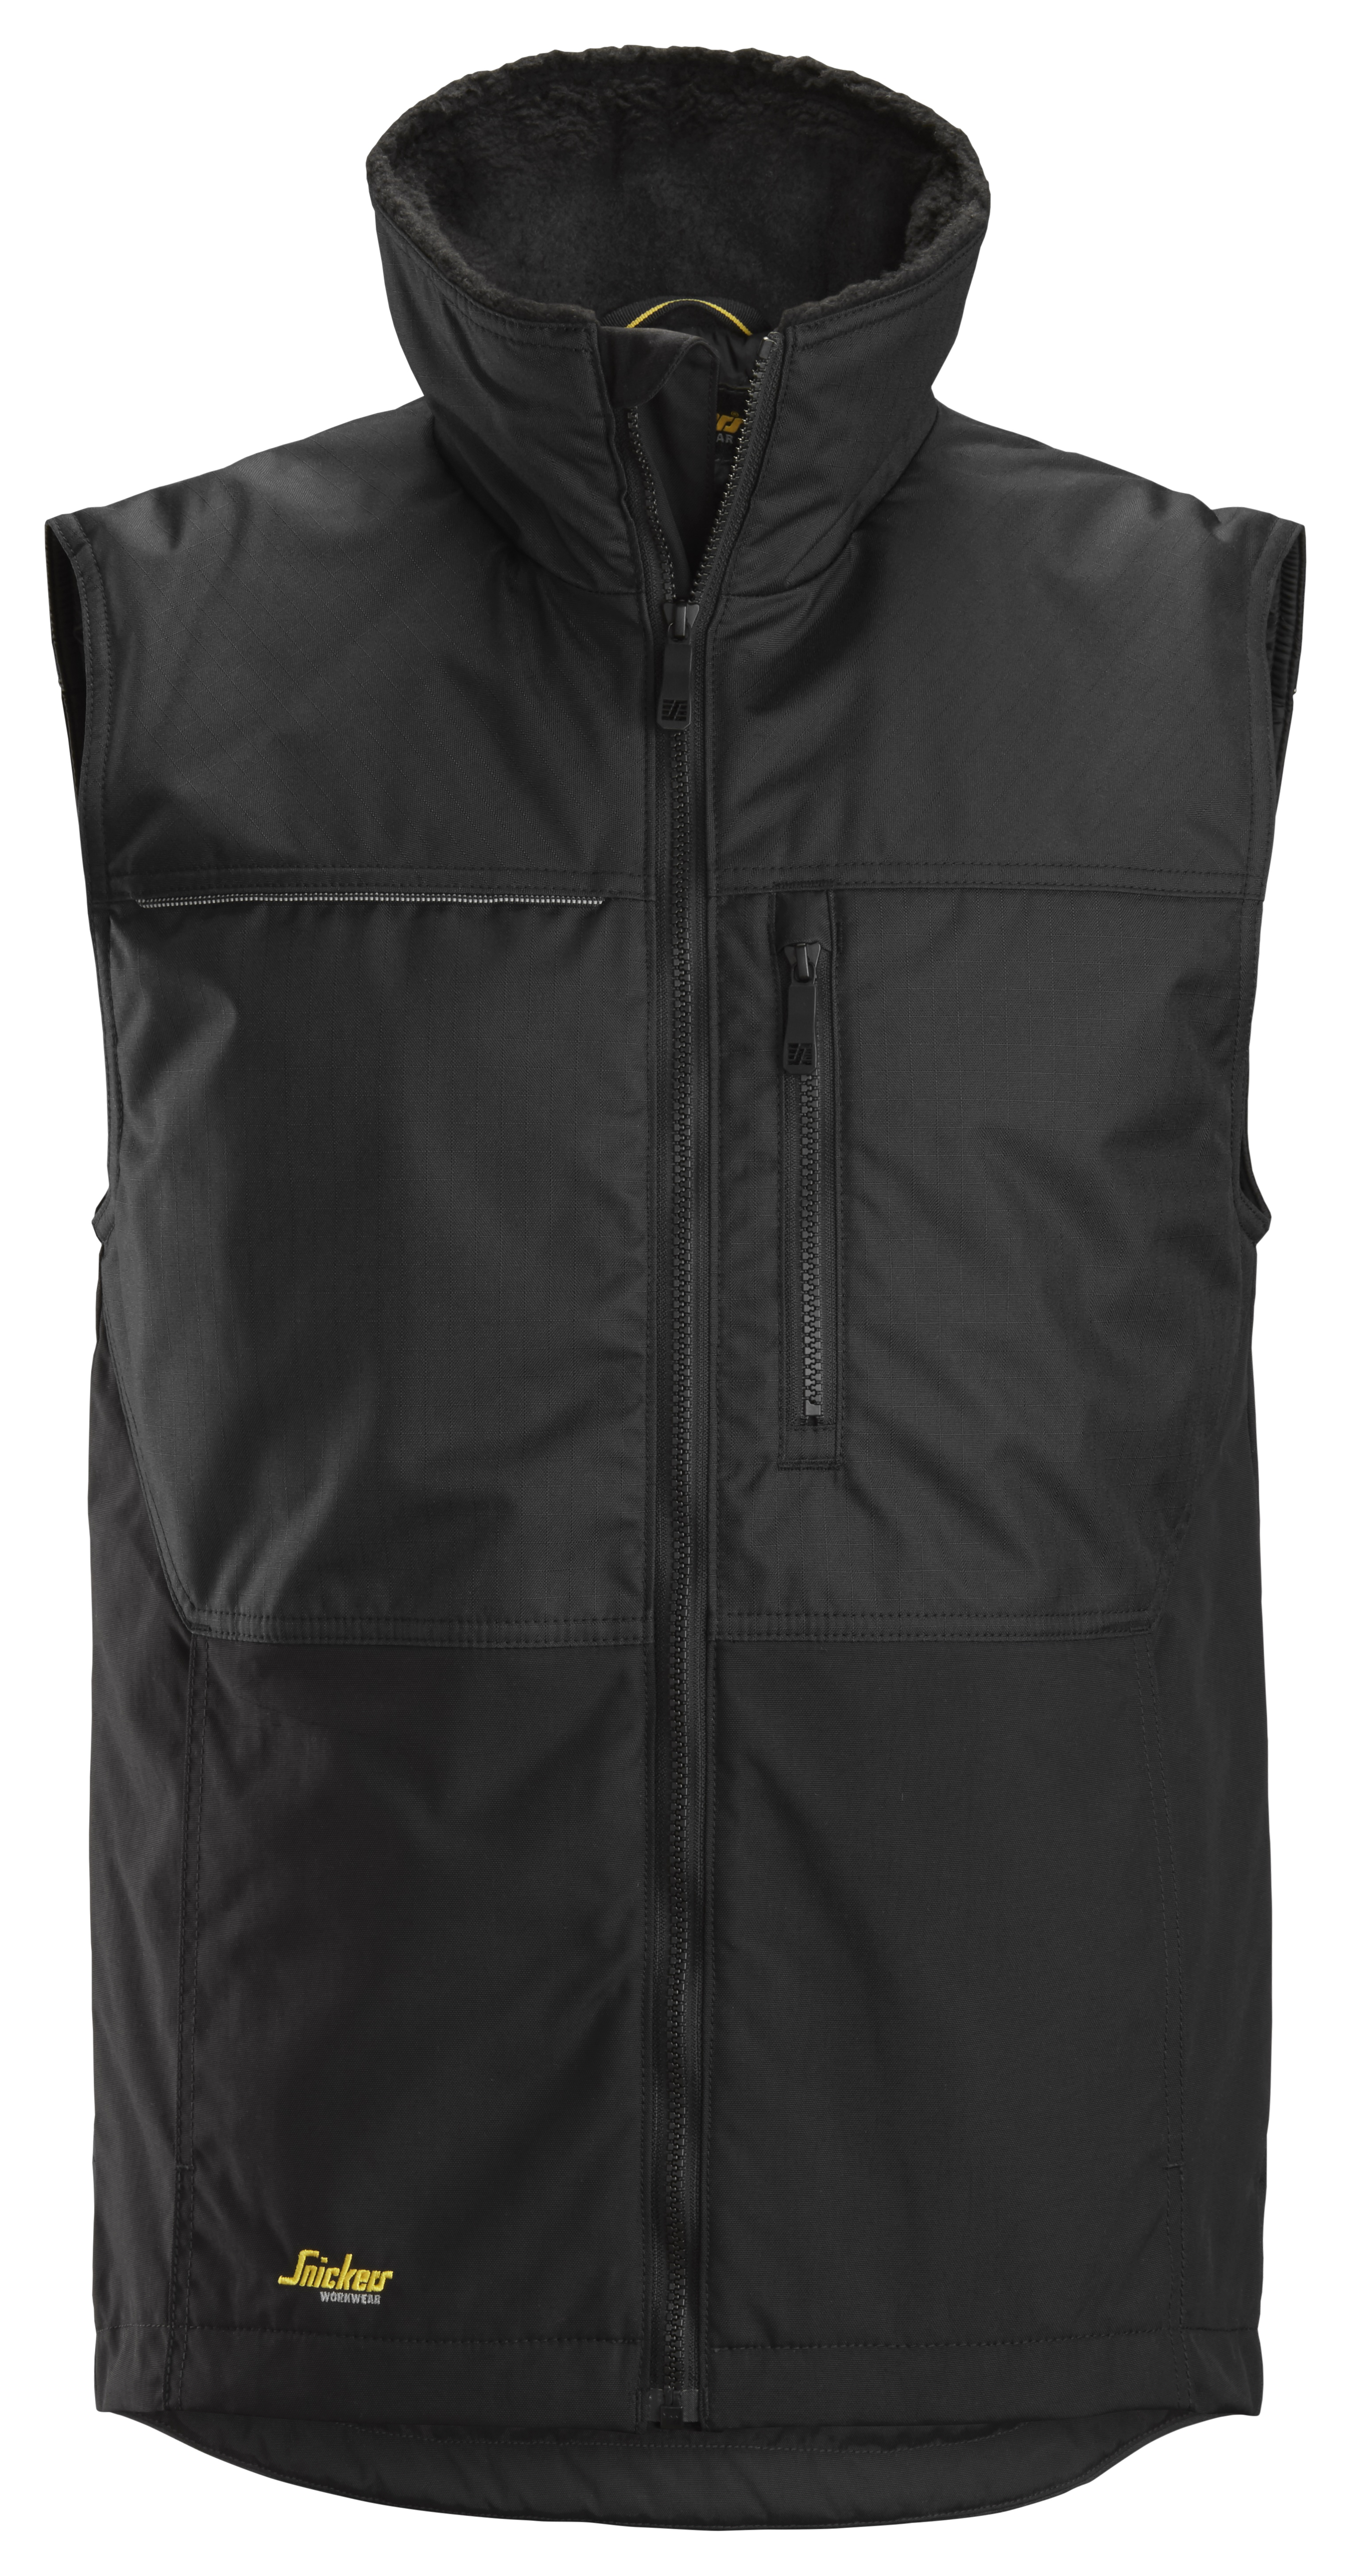 Snickers 4548 - AllroundWork, Gilet d'hiver